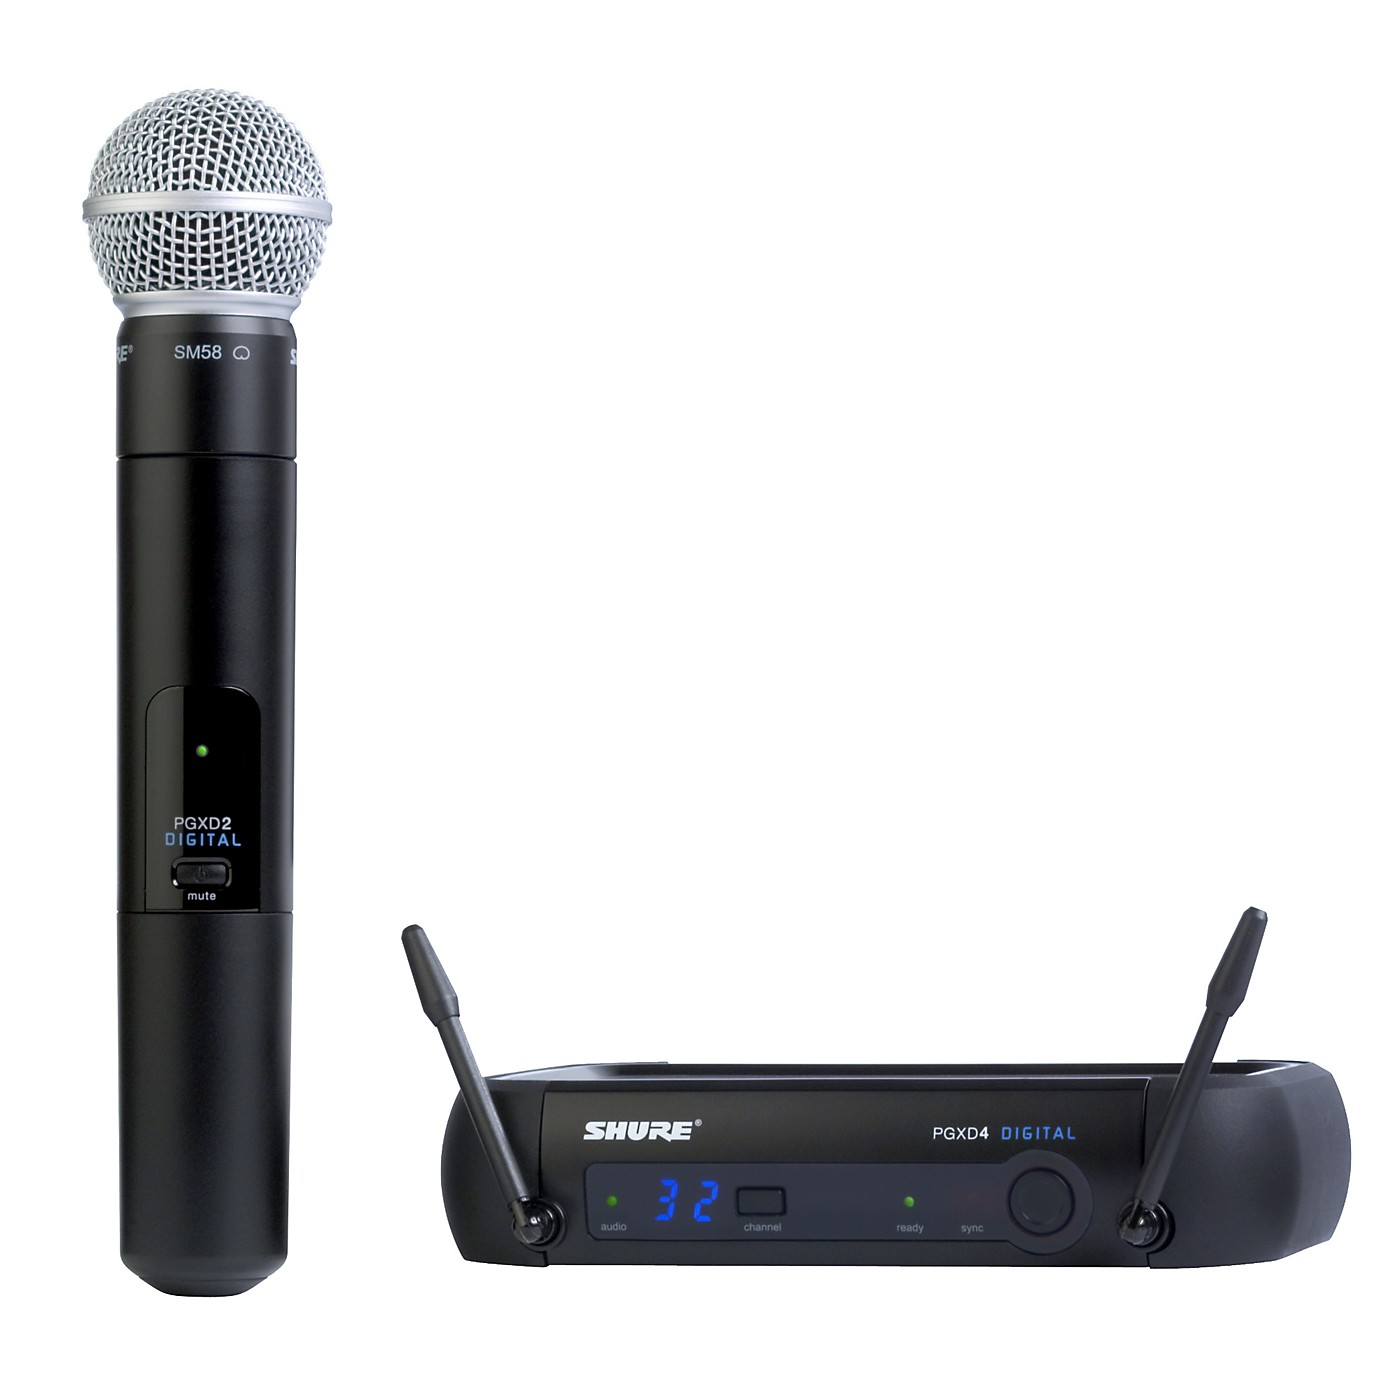 Shure PGXD24/SM58 Digital Wireless System with SM58 Mic thumbnail